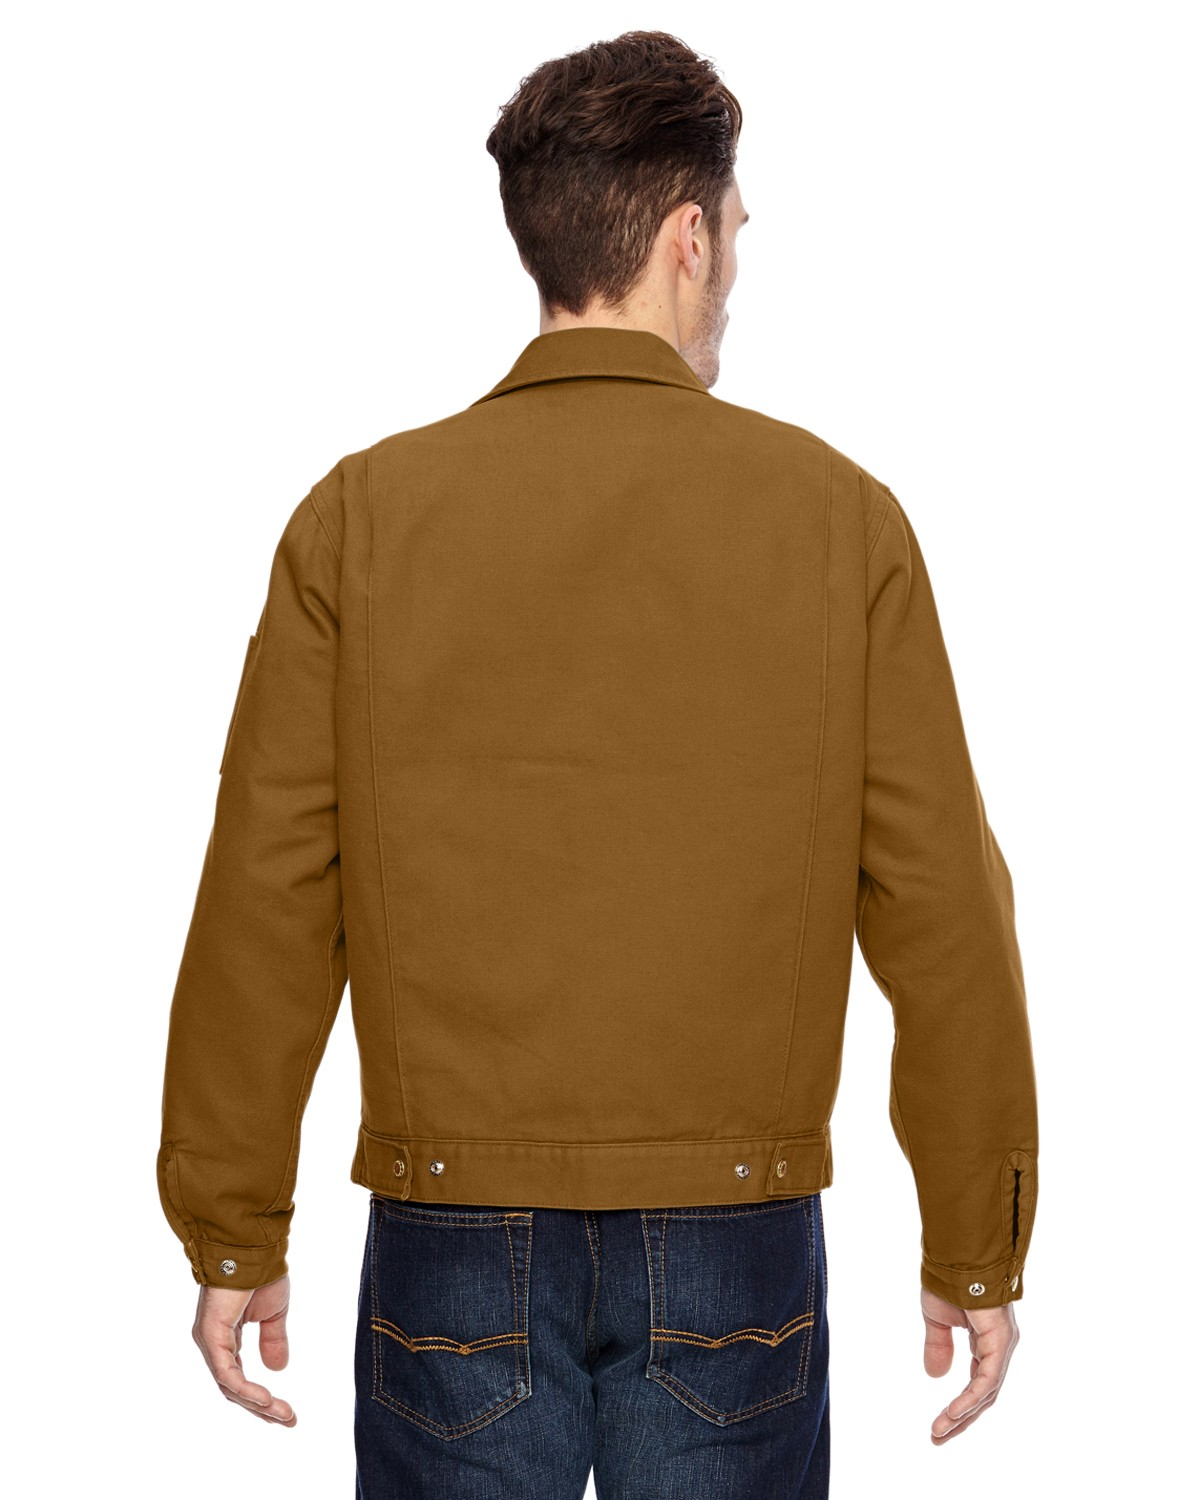 LJ539 Dickies BROWN DUCK